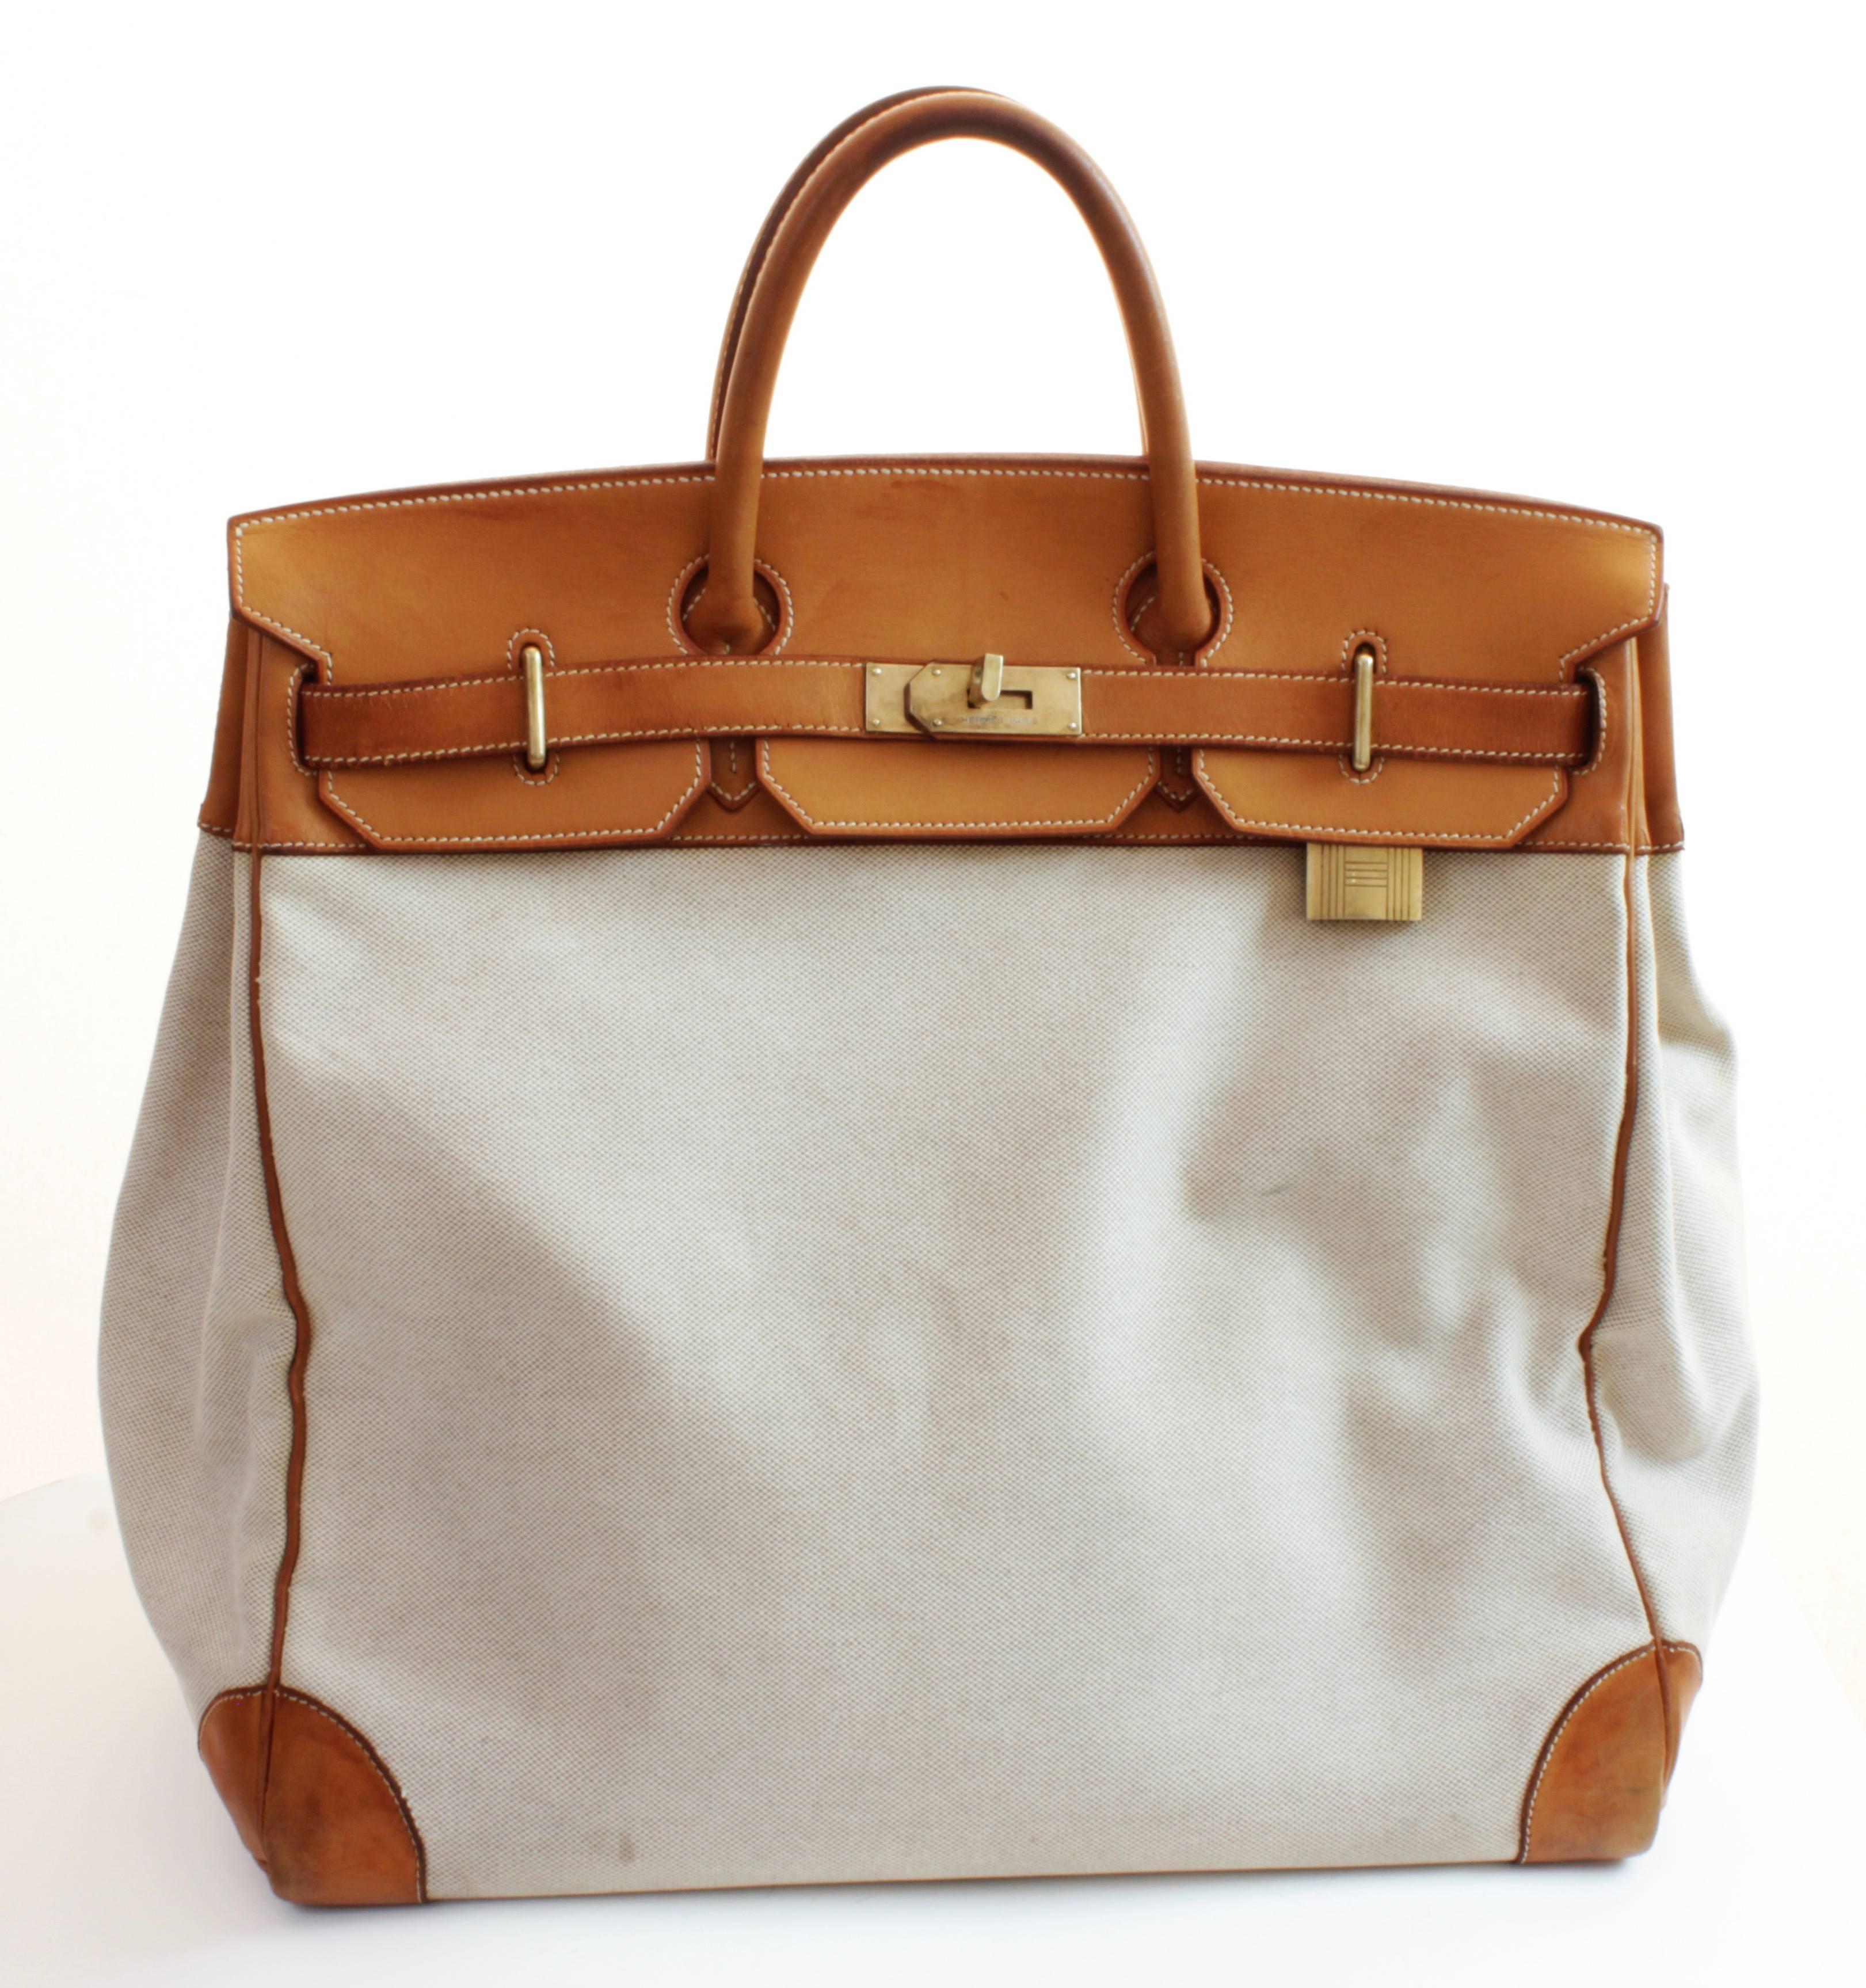 c07366e1ded ... promo code for this fabulous and hard to find extra large travel bag  was made by